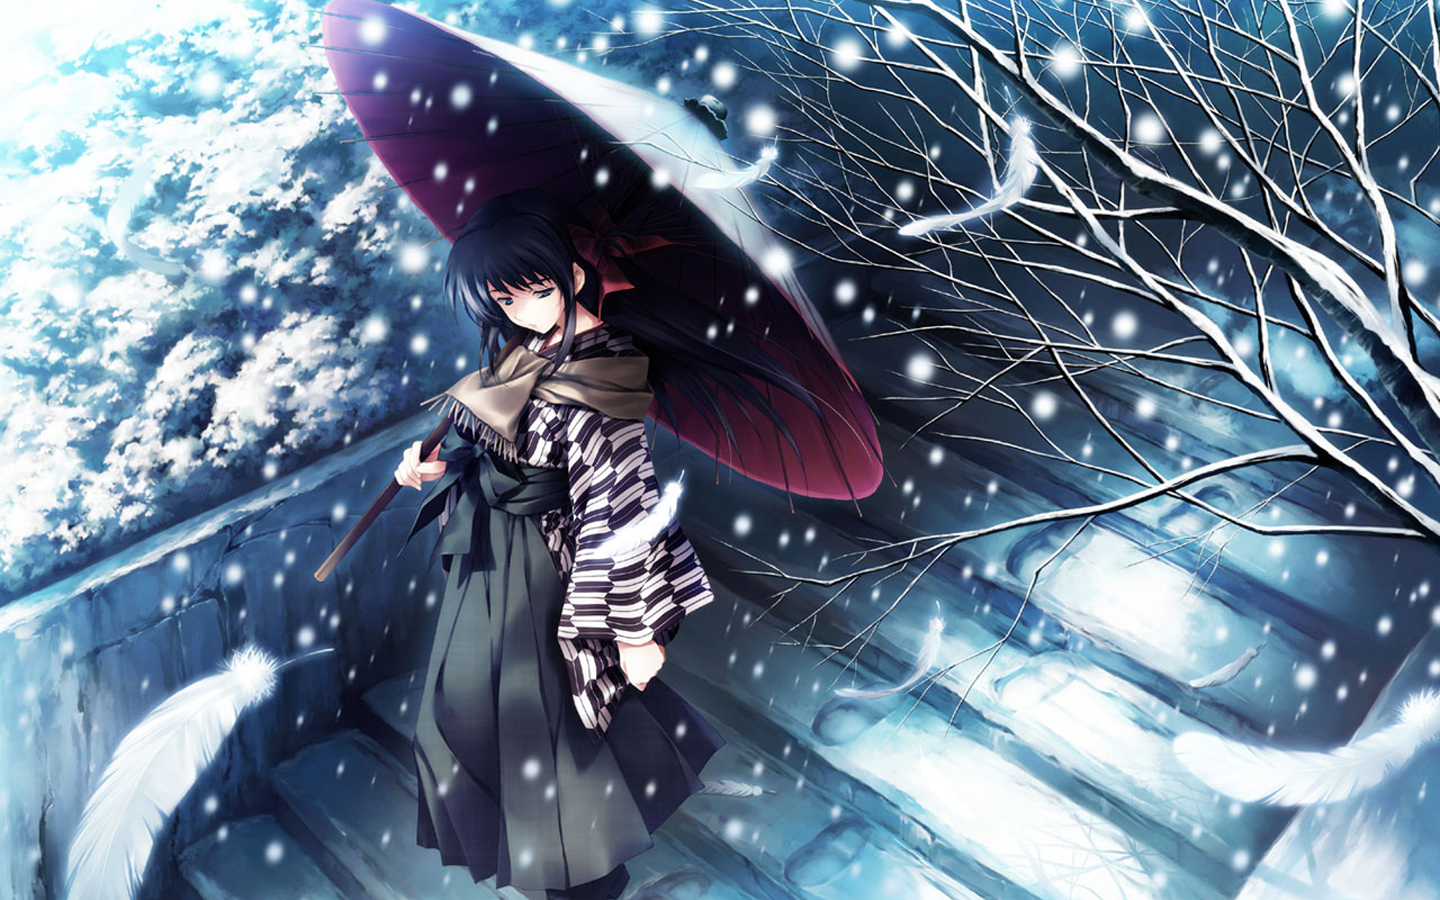 best ideas about Anime Wallpaper  on Pinterest  Anime 1440x900